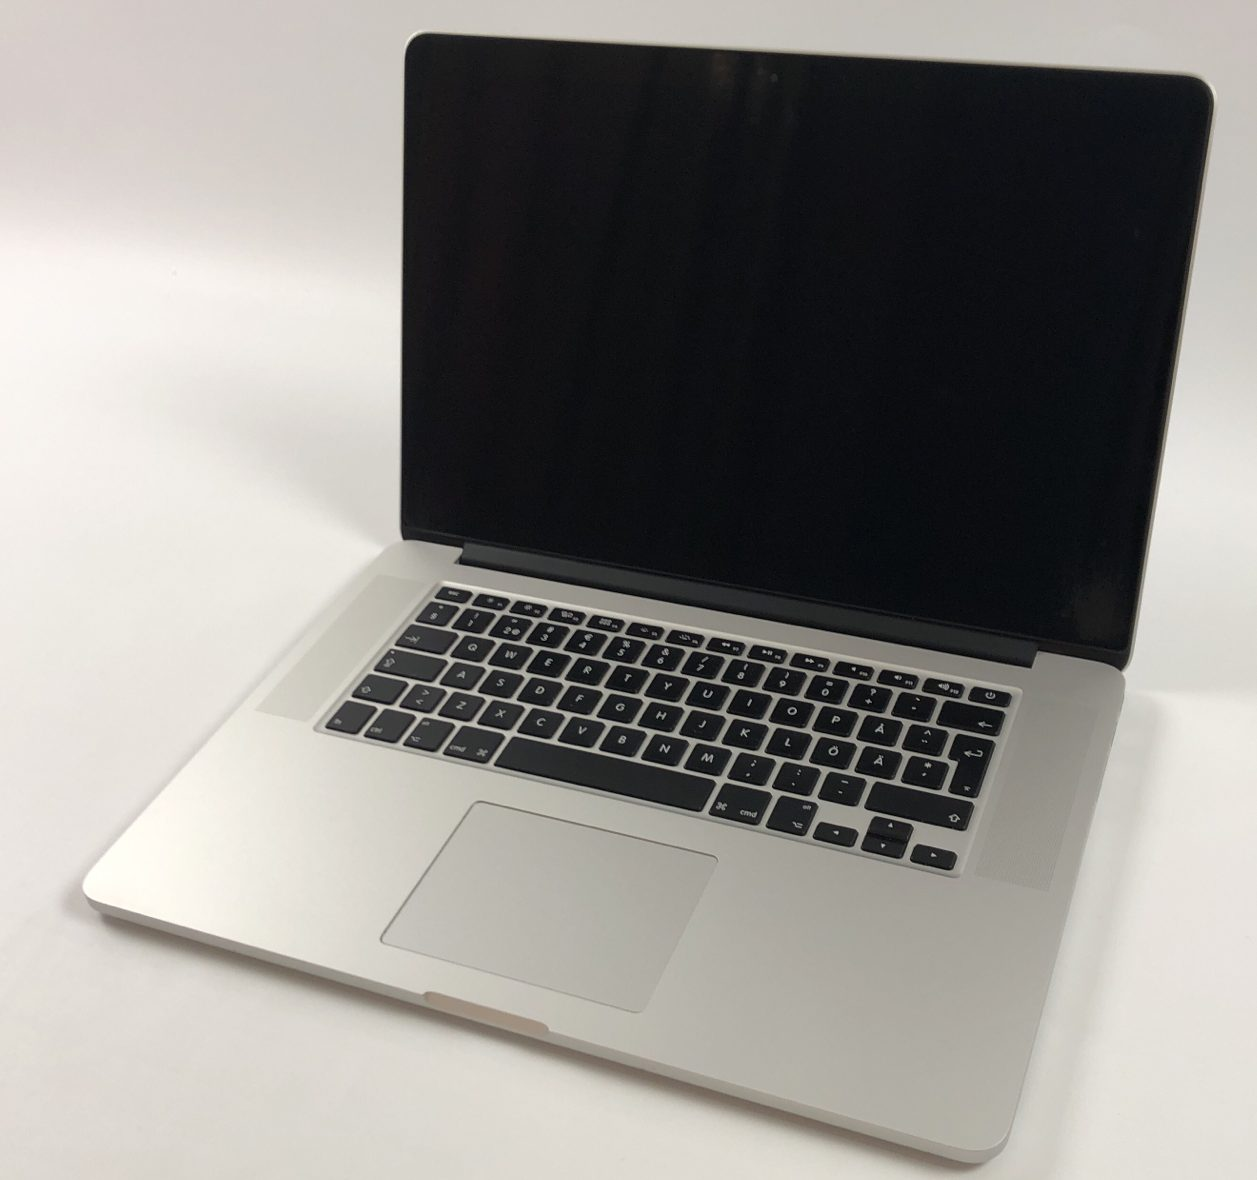 "MacBook Pro Retina 15"" Mid 2015 (Intel Quad-Core i7 2.8 GHz 16 GB RAM 512 GB SSD), Intel Quad-Core i7 2.8 GHz, 16 GB RAM, 512 GB SSD, image 1"